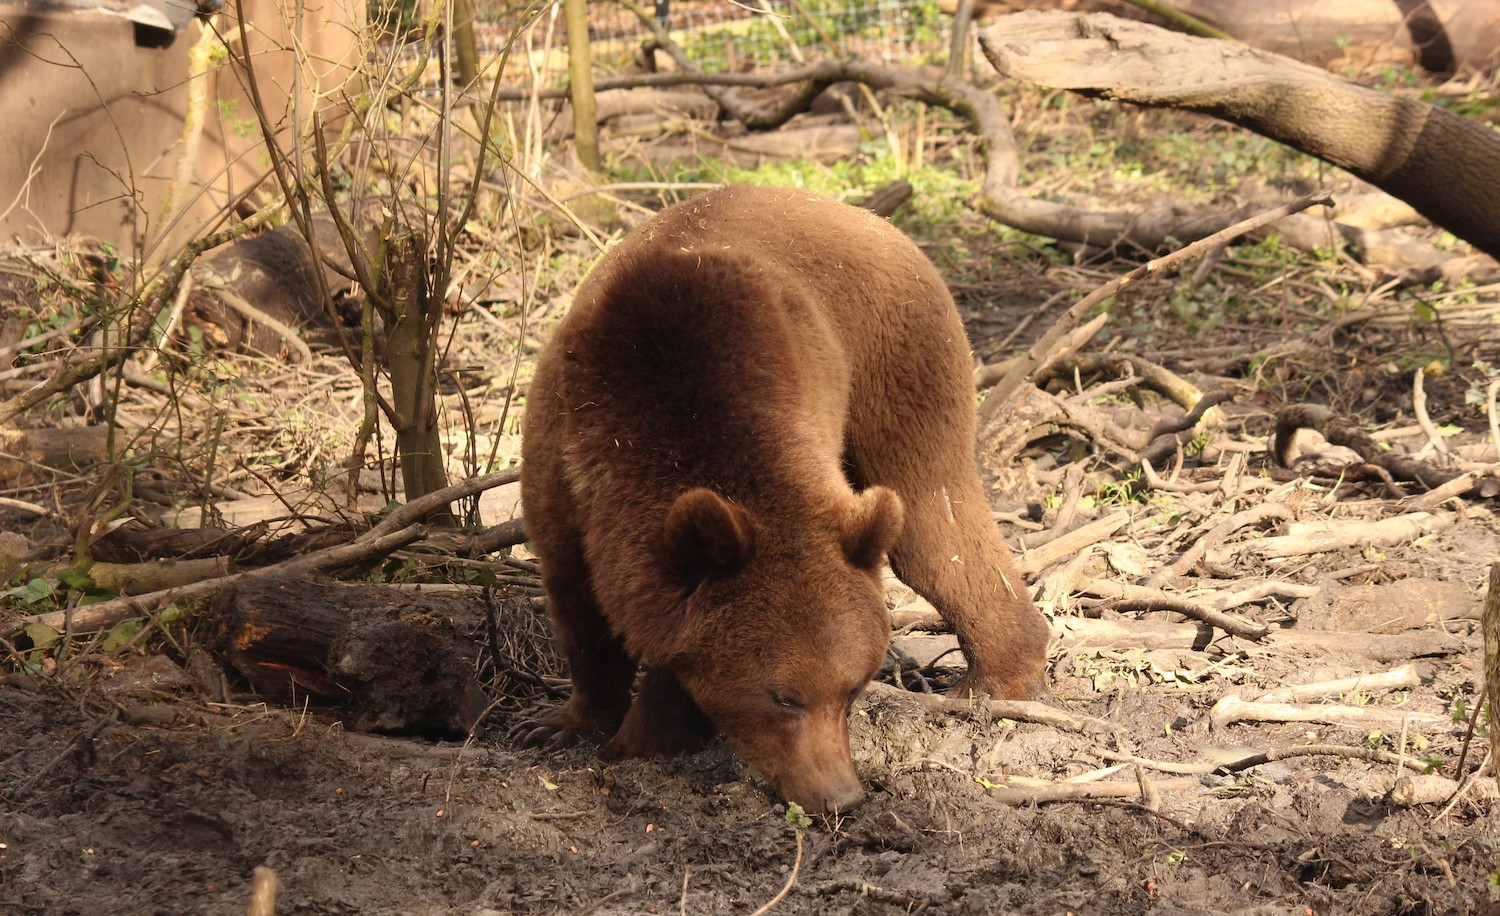 Charity appeal | Help save the bears at Wild Place Project